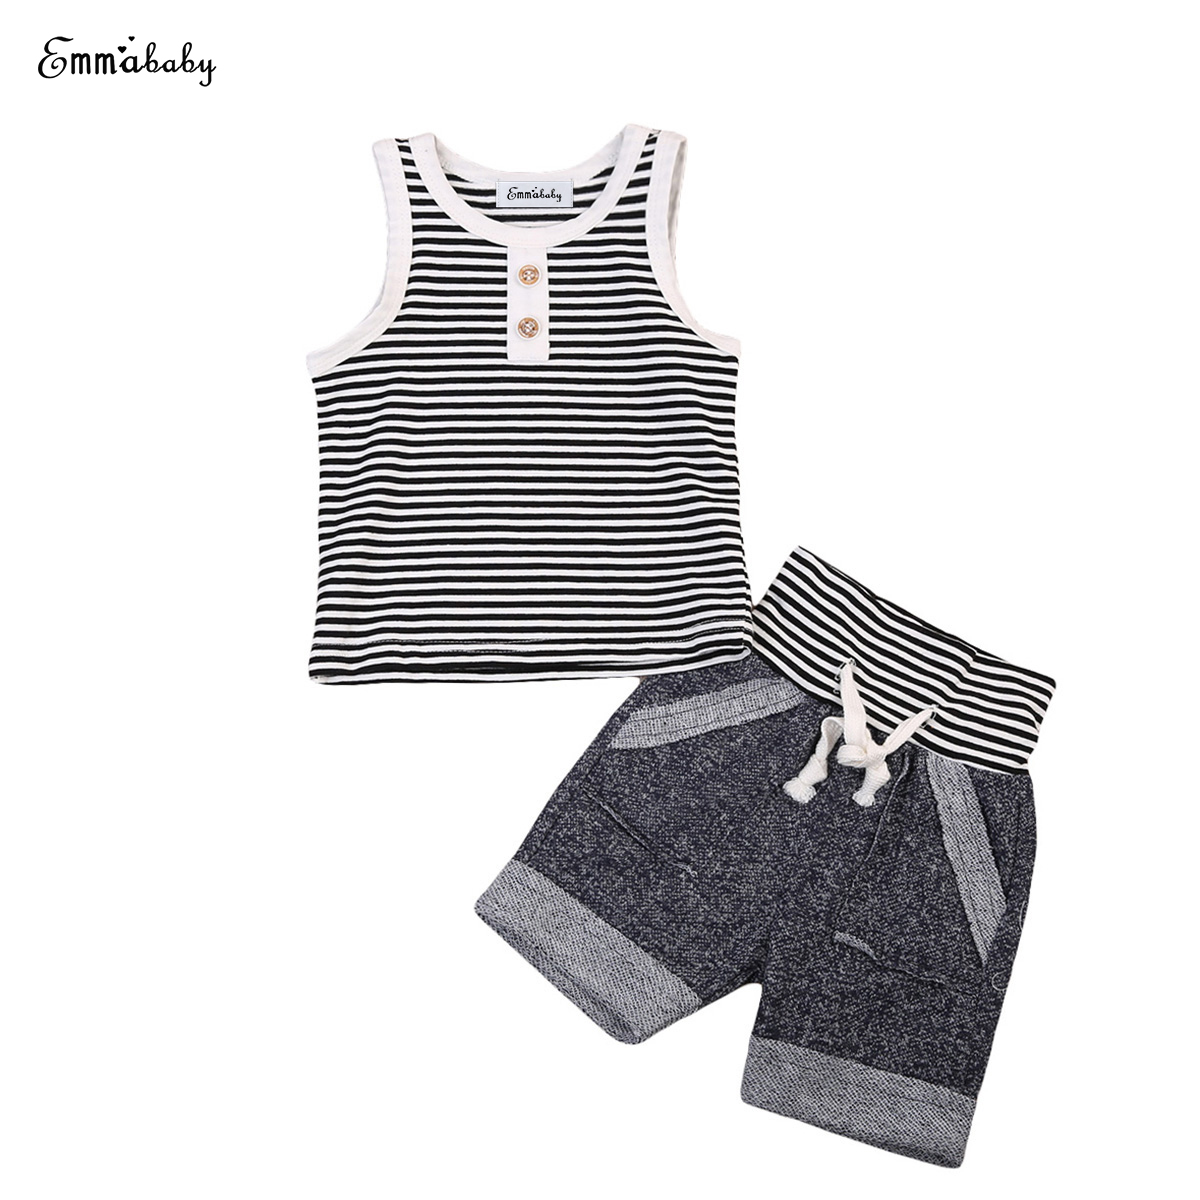 2018 summer casual kid clothes set New Baby Toddler Kids Boy sleeveless Cotton striped Clothes T Shirt Tee Top+shorts Outfit Set 2pcs set baby clothes set boy